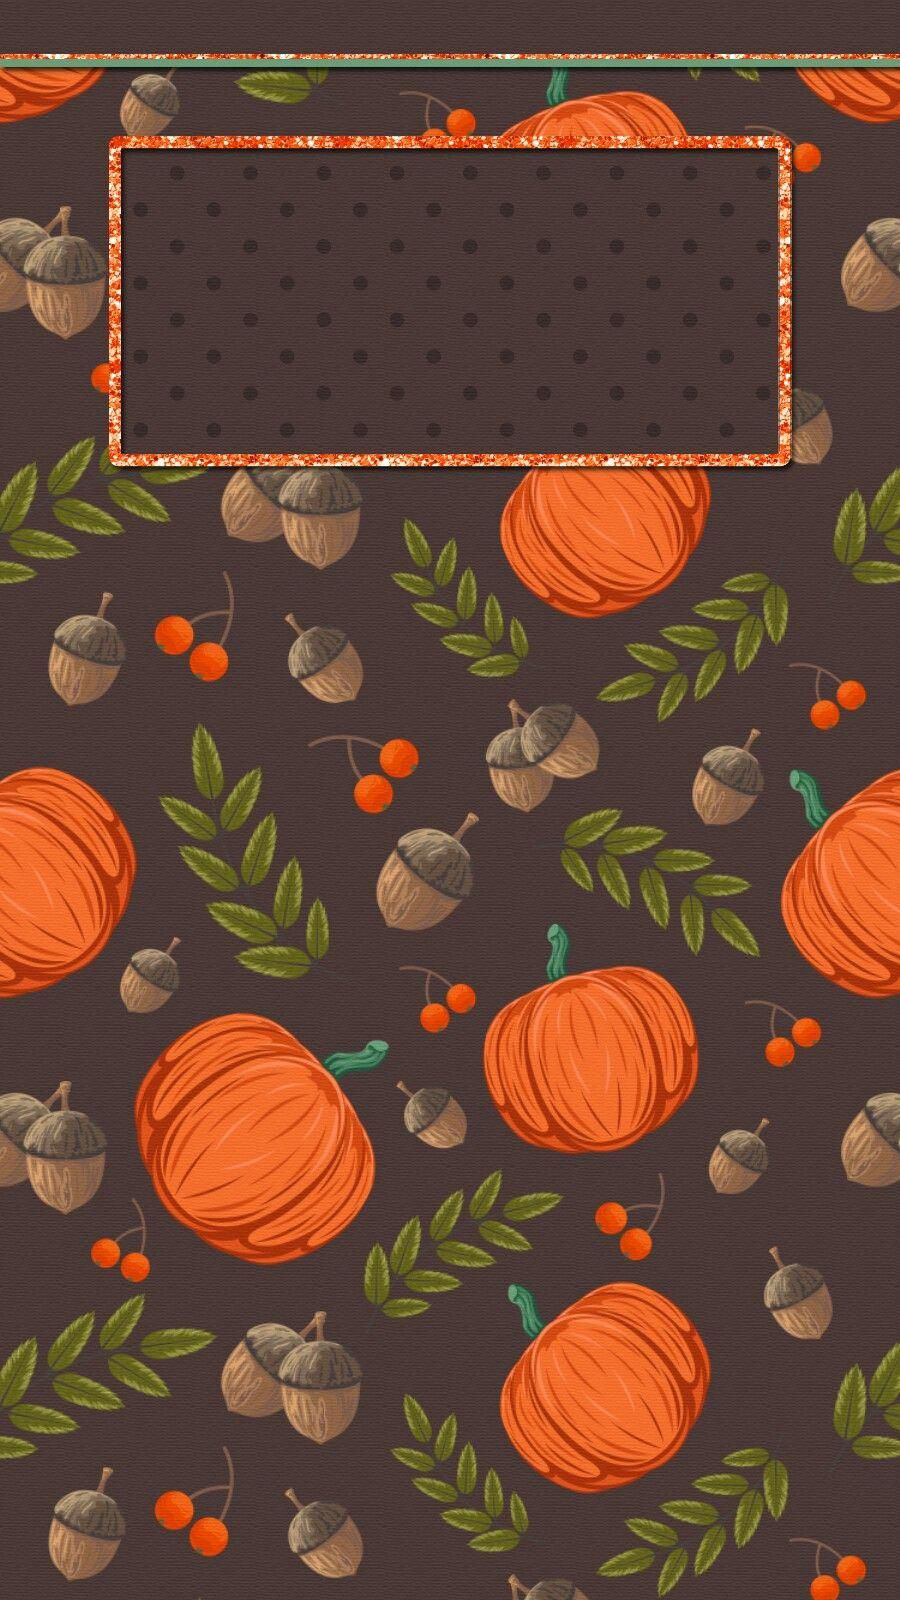 Digitalcutewalls Iphonewallpaper Fall Wallpaper Iphone Wallpaper Fall Holiday Wallpaper